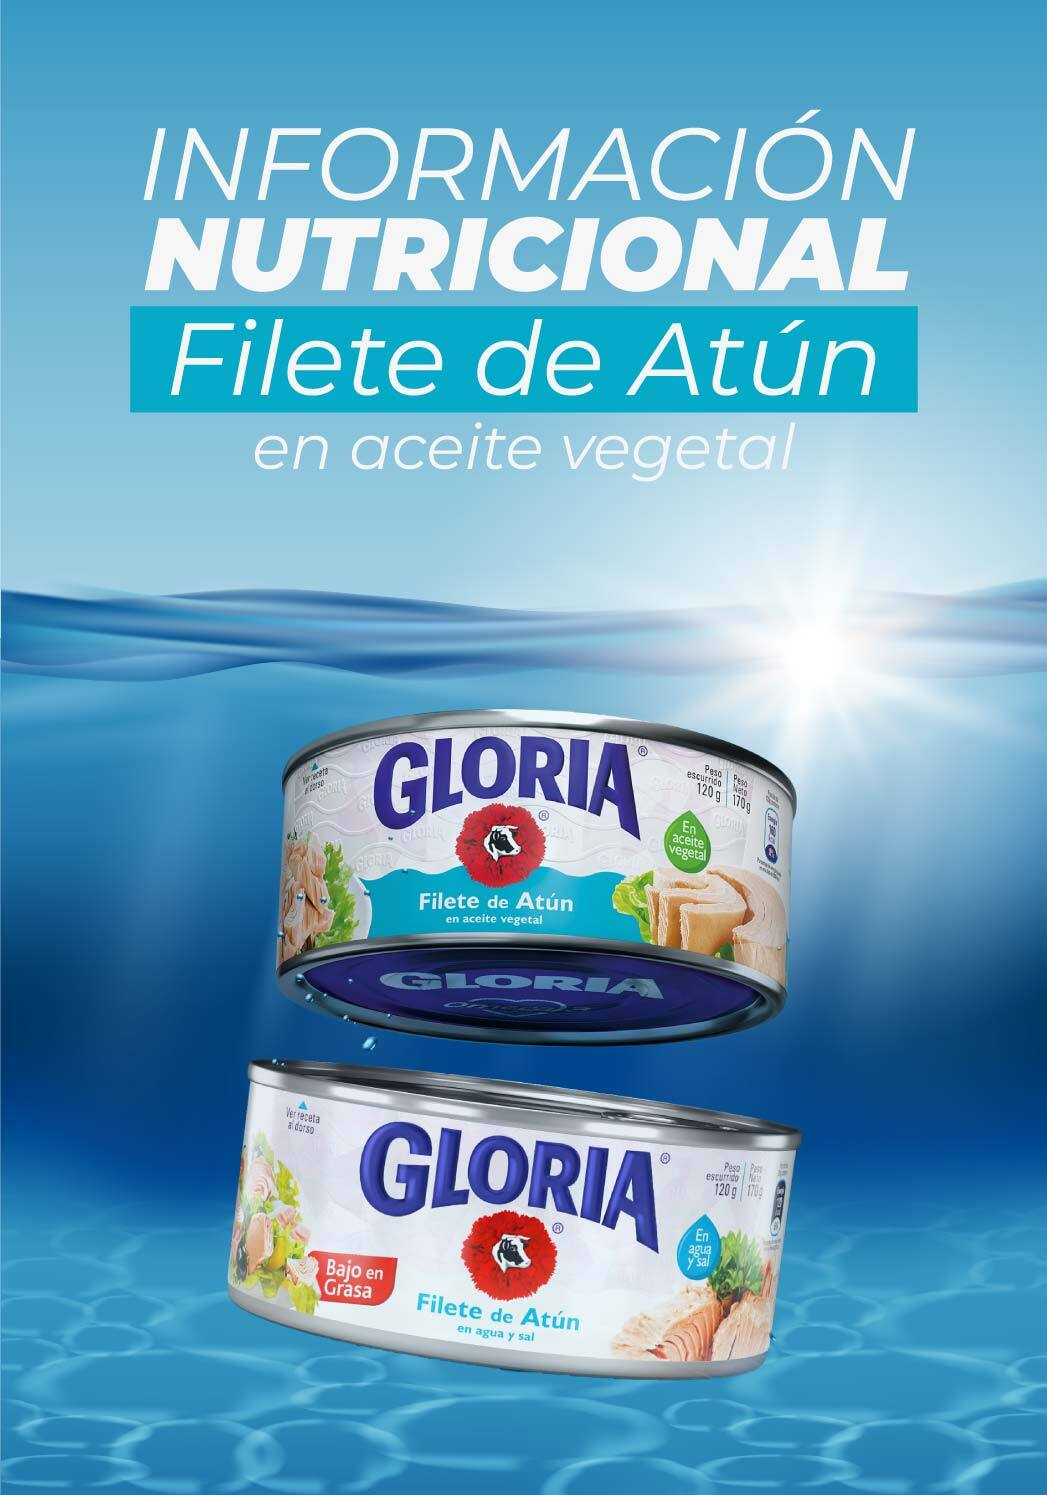 Filete de Atún Gloria